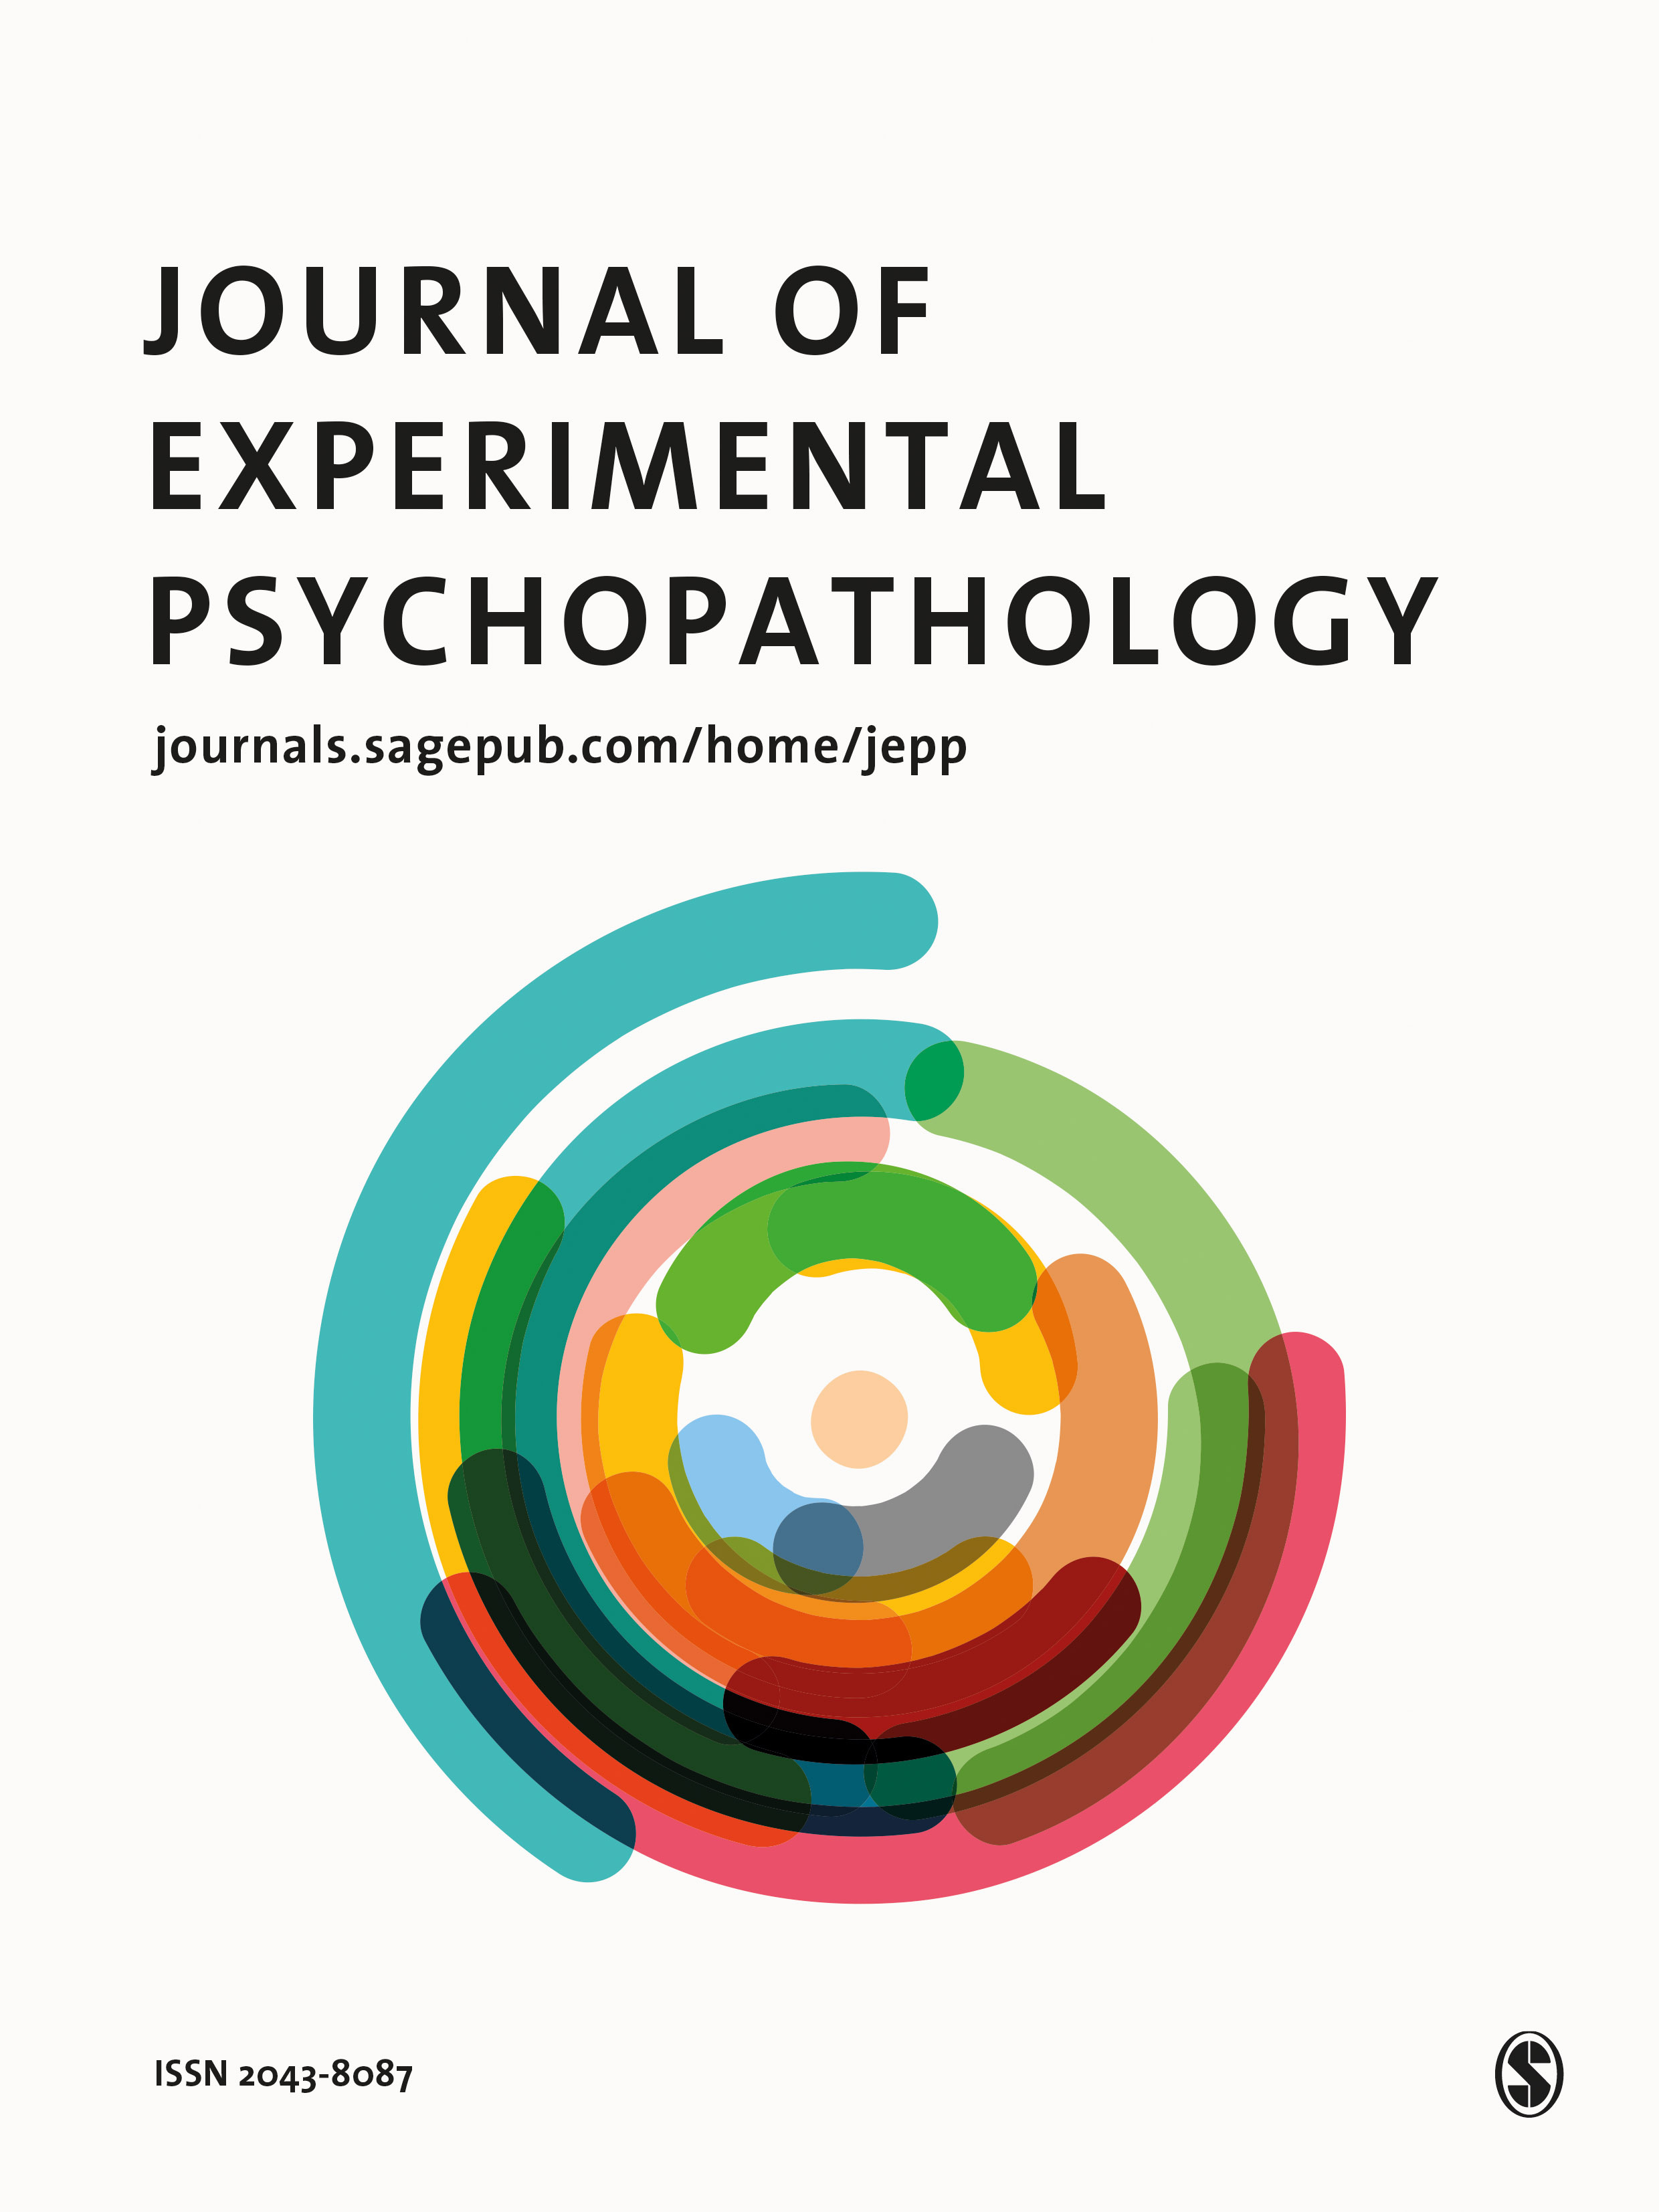 Journal of Experimental Psychopathology